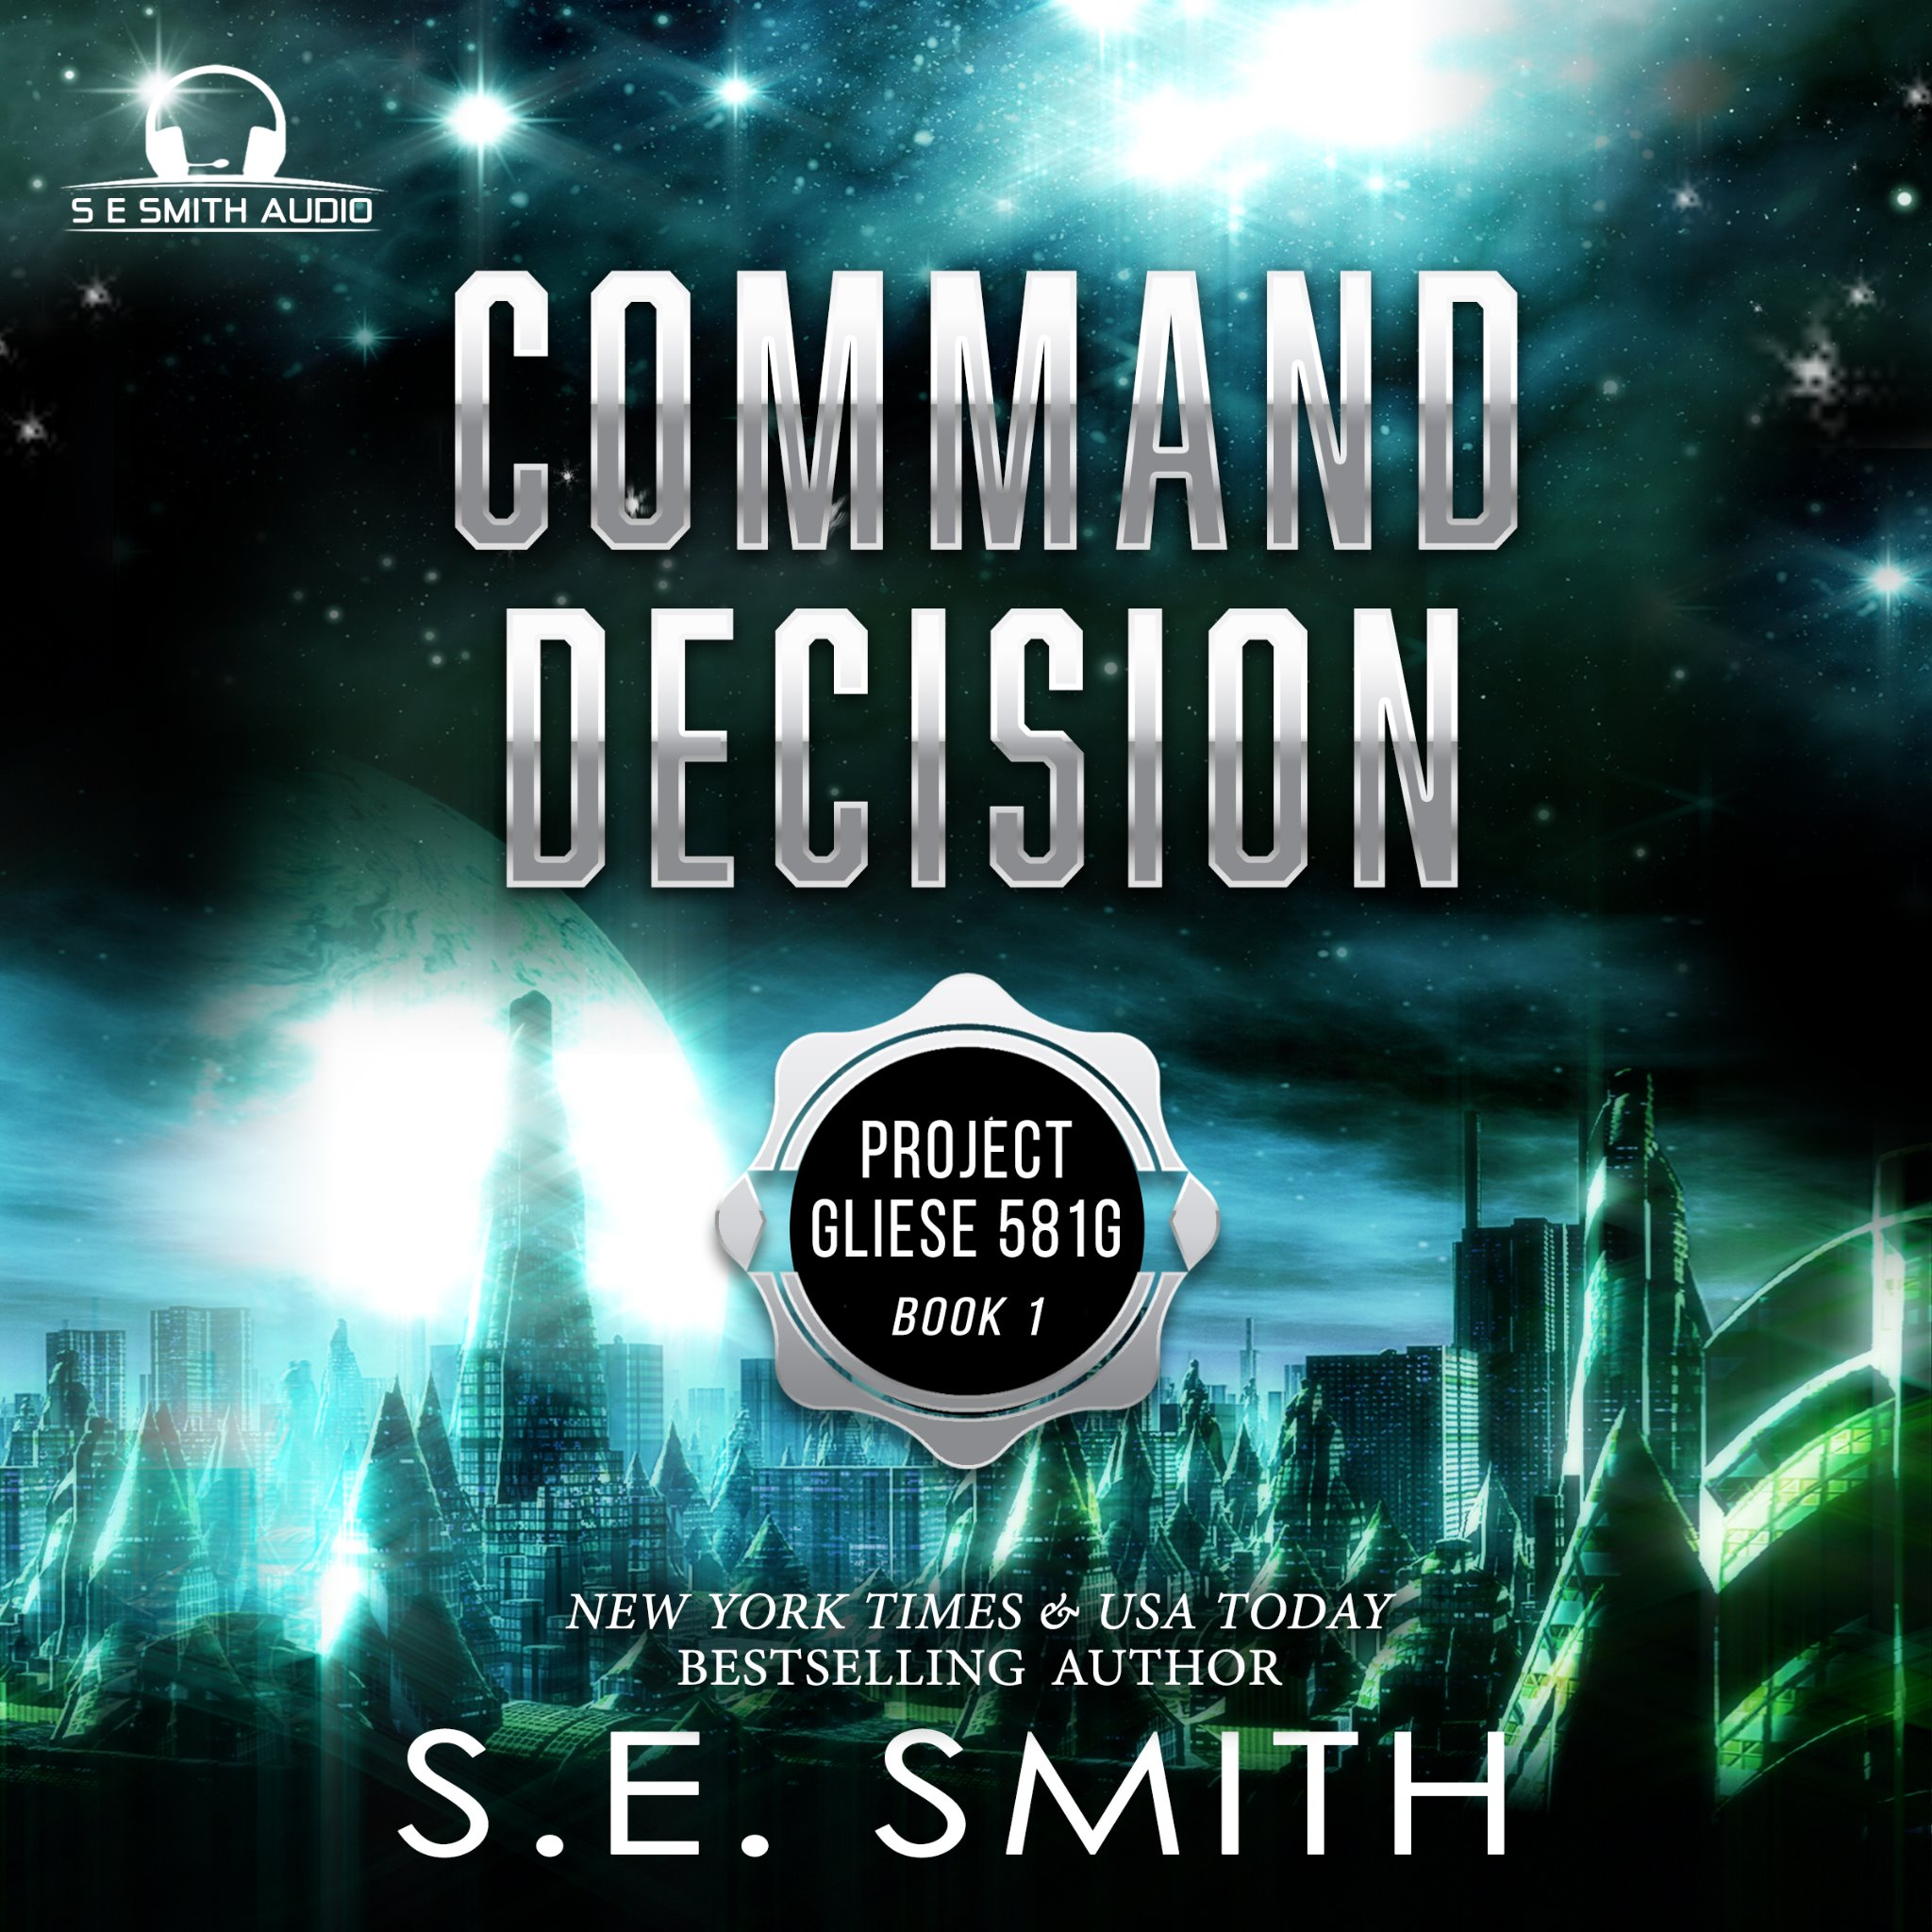 Command Decision: Project Gliese 581g Book 1 (Audiobook CD)